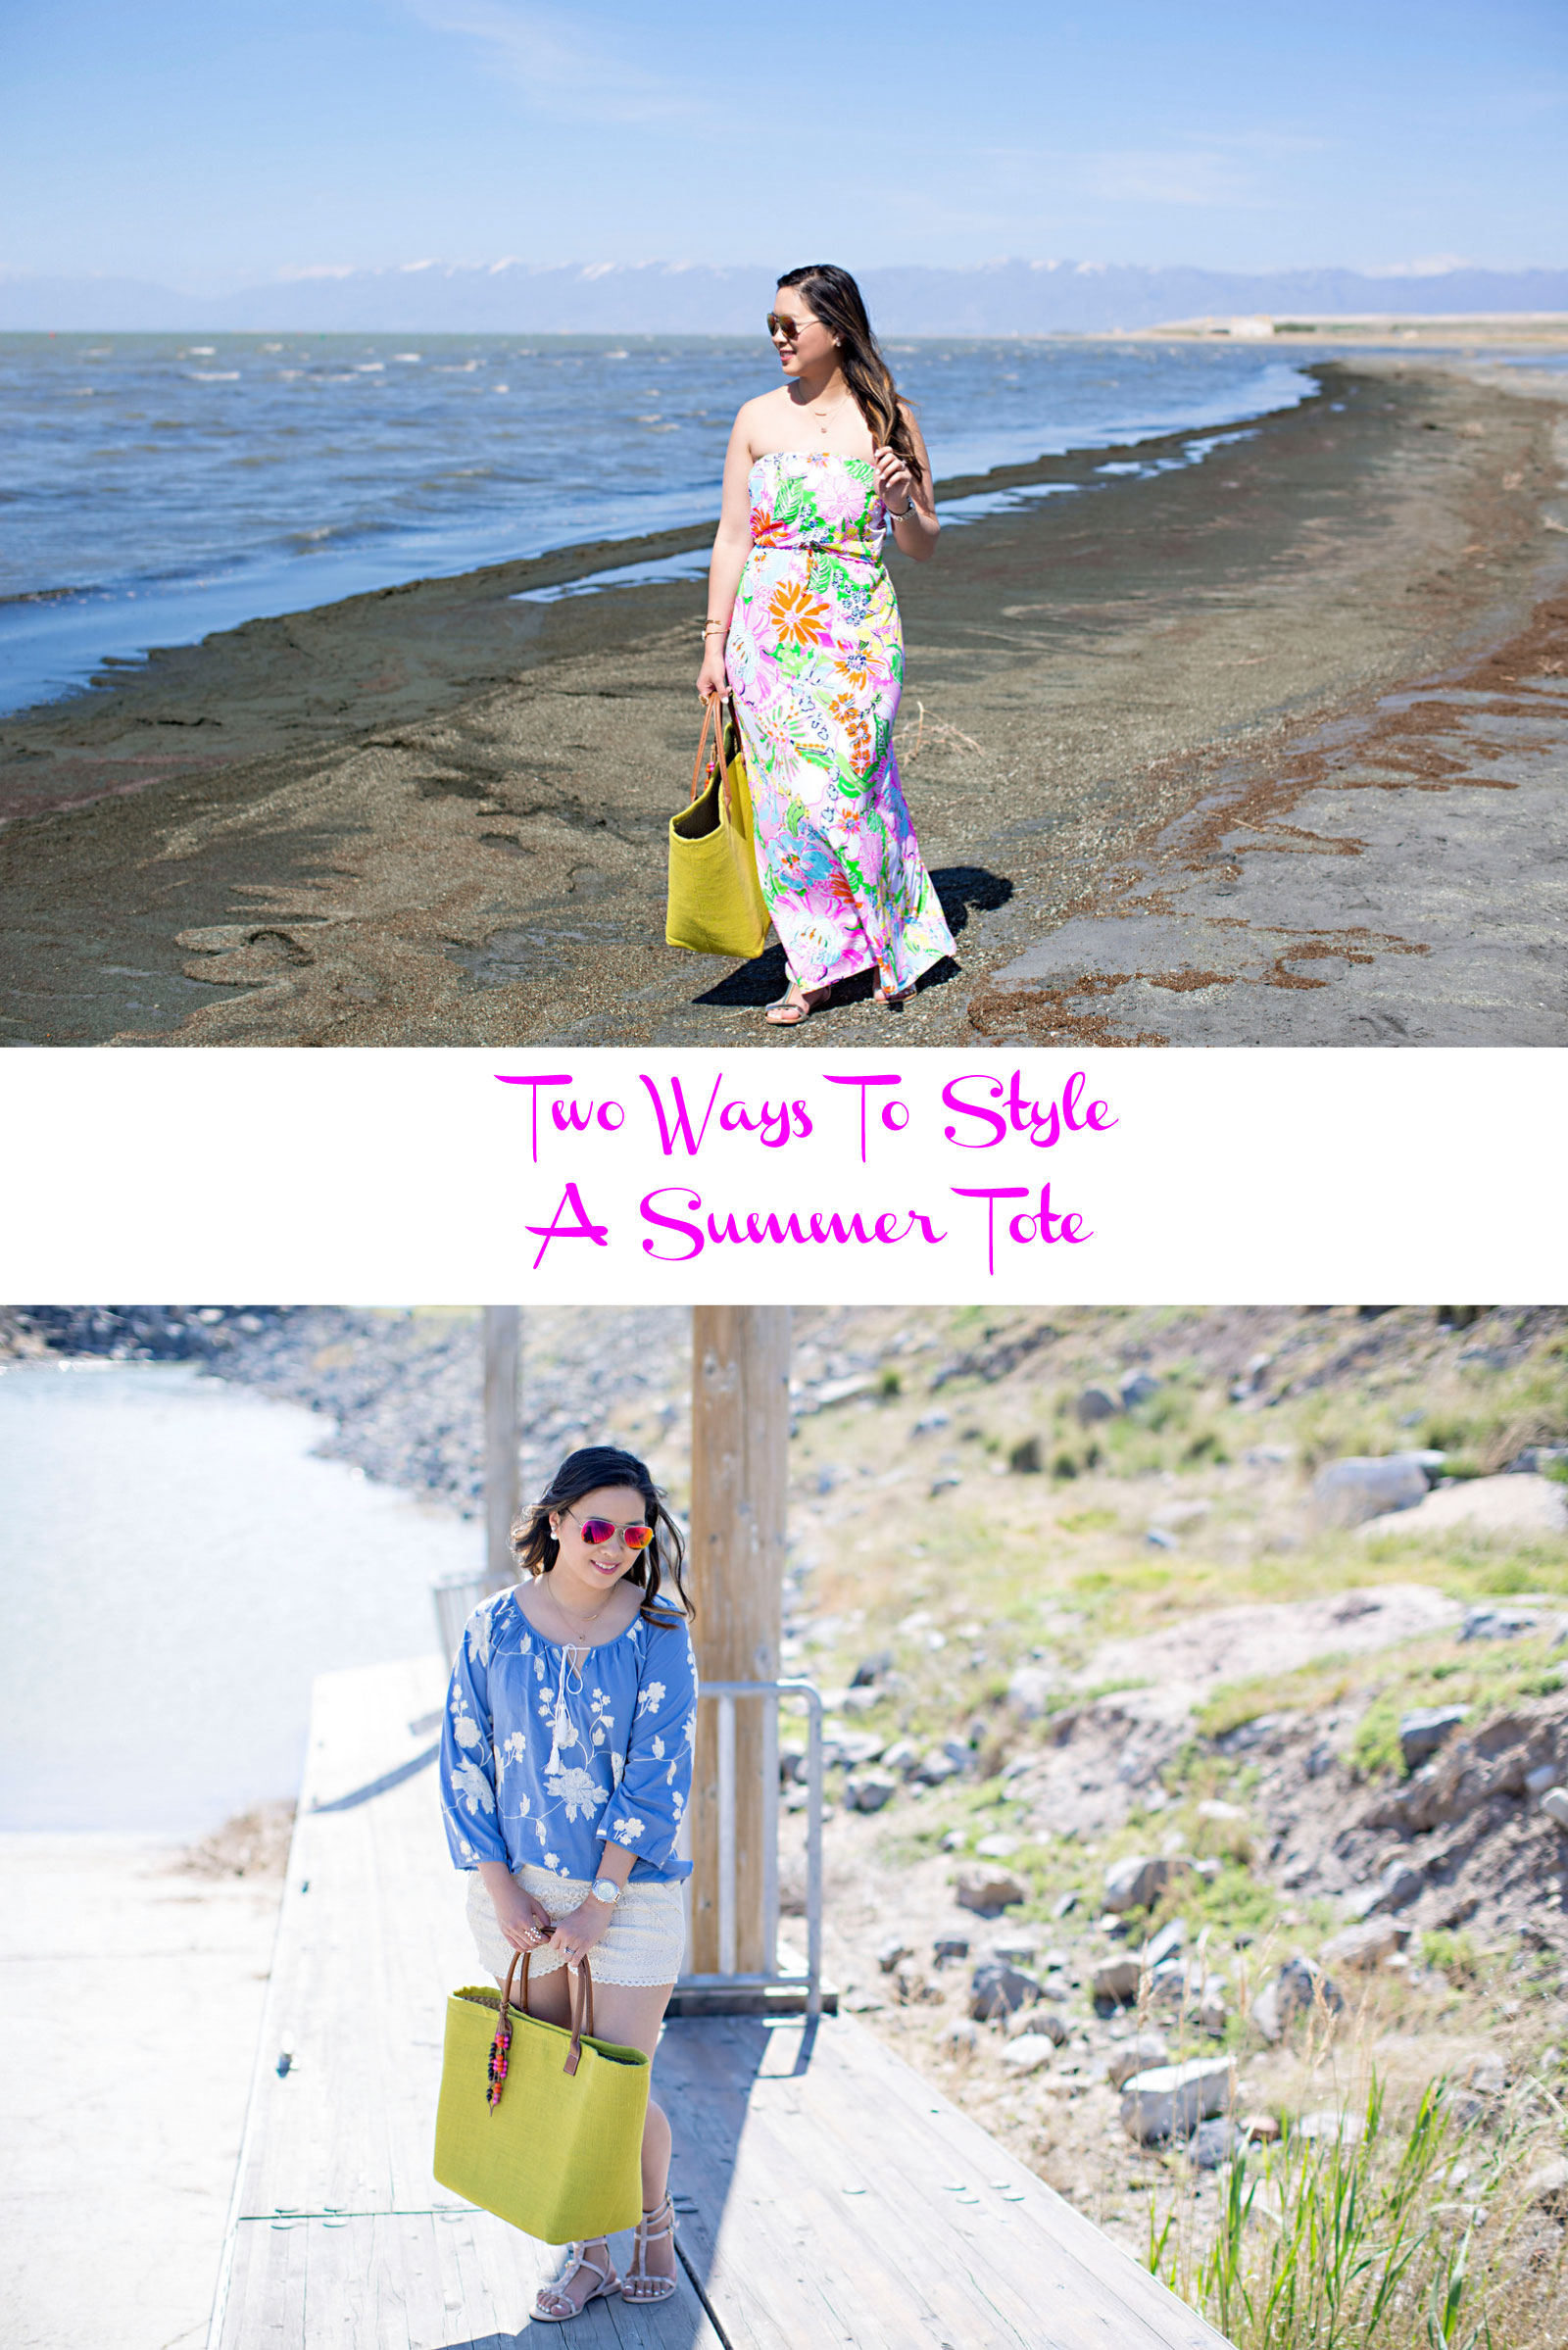 Sandy a la Mode | Fashion Blogger Two Ways To Style a Summer Tote